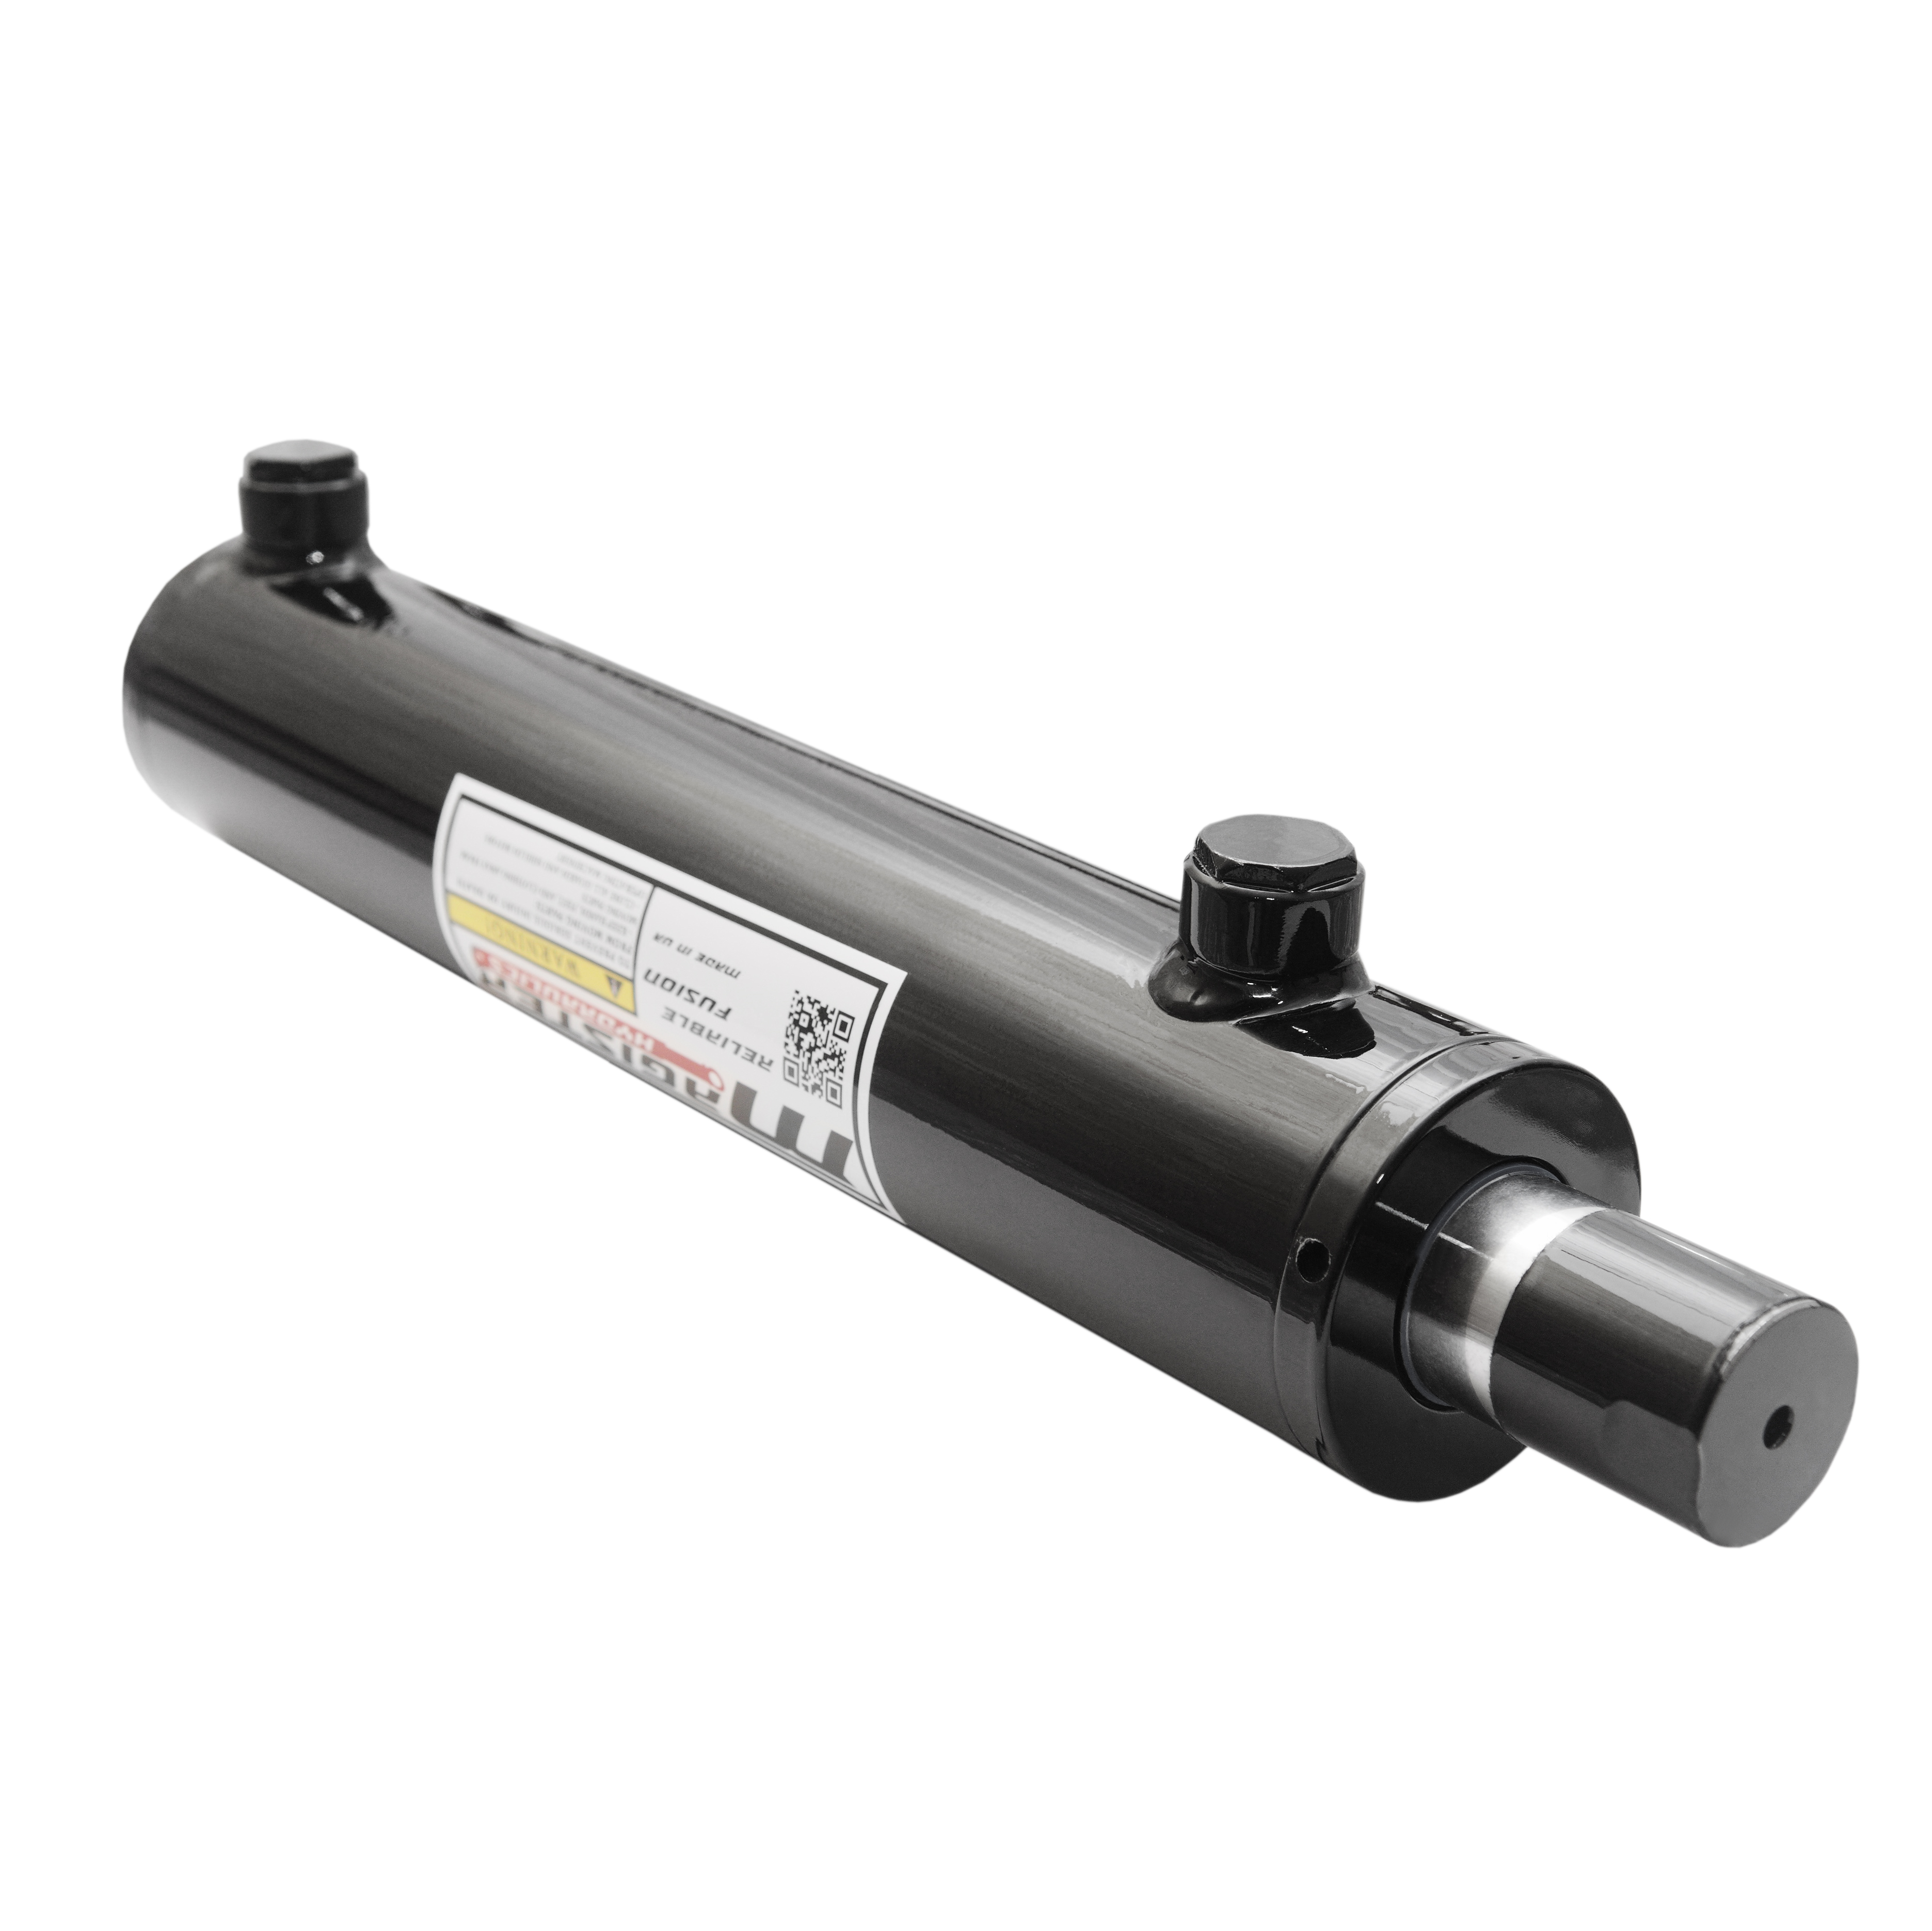 2 bore x 16 stroke hydraulic cylinder, welded universal double acting cylinder | Magister Hydraulics